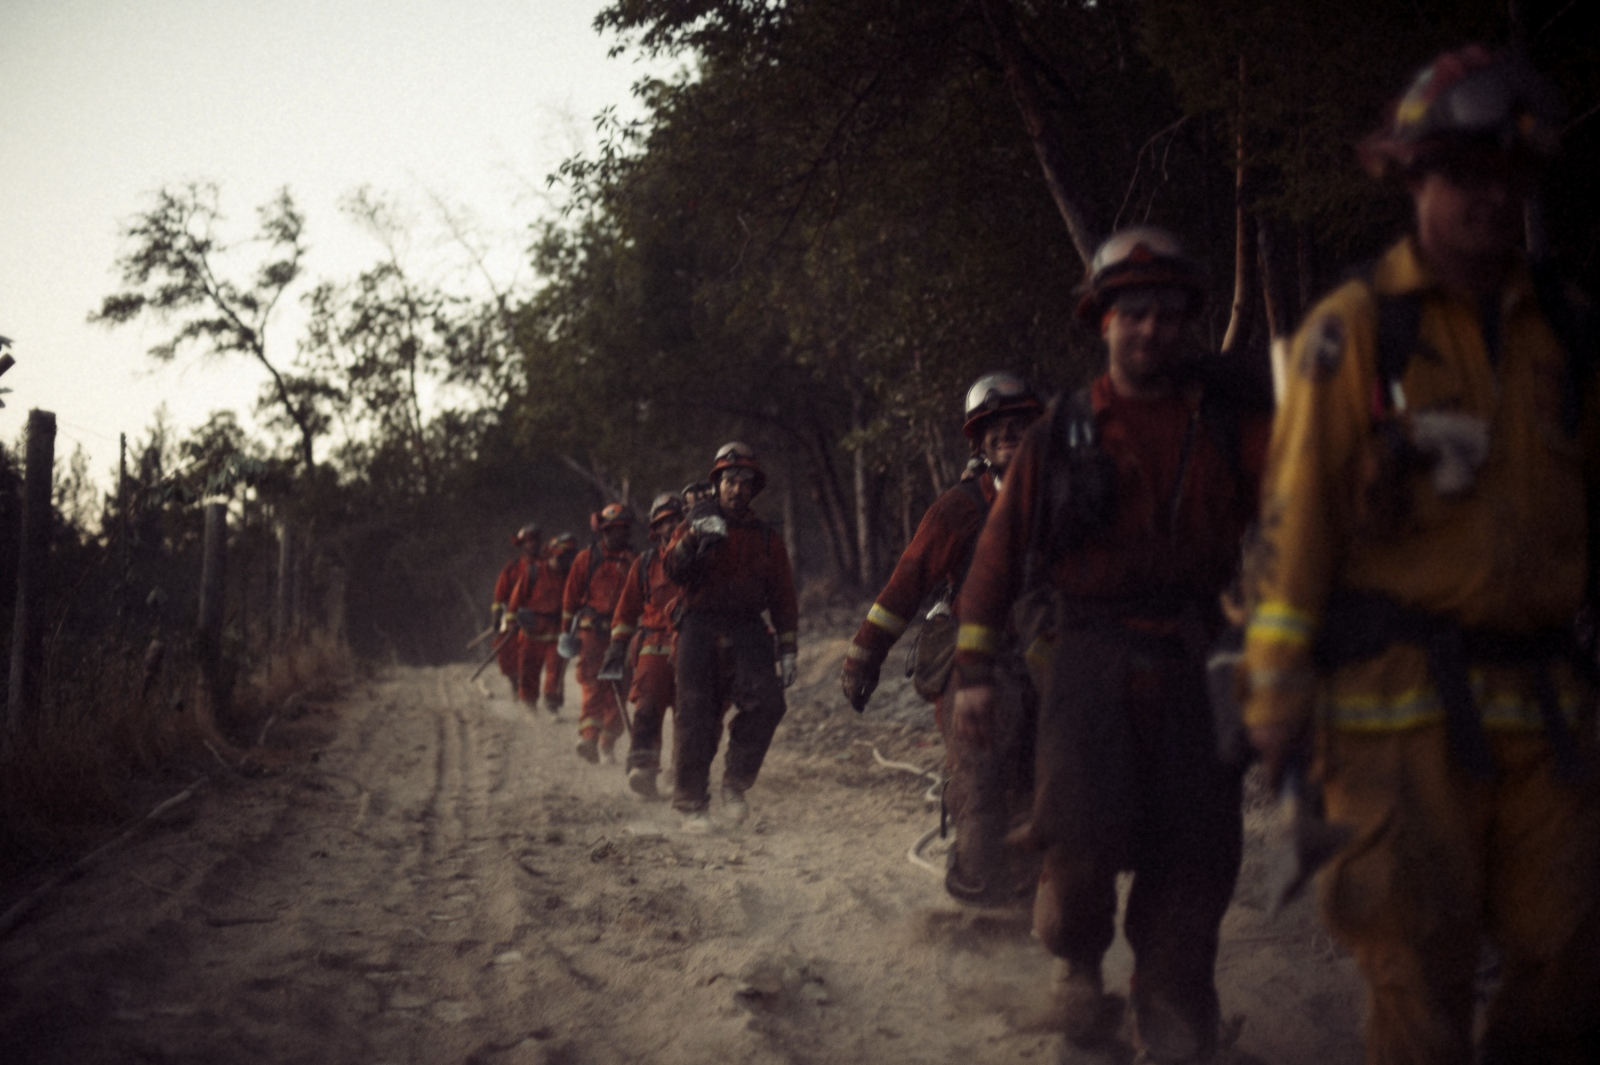 Antelope Conservation Camp firemen are led in formation by a Cal Fire captain during a 24 hour shift fighting fires in Sonoma, CA, during the devastating wine country fires.